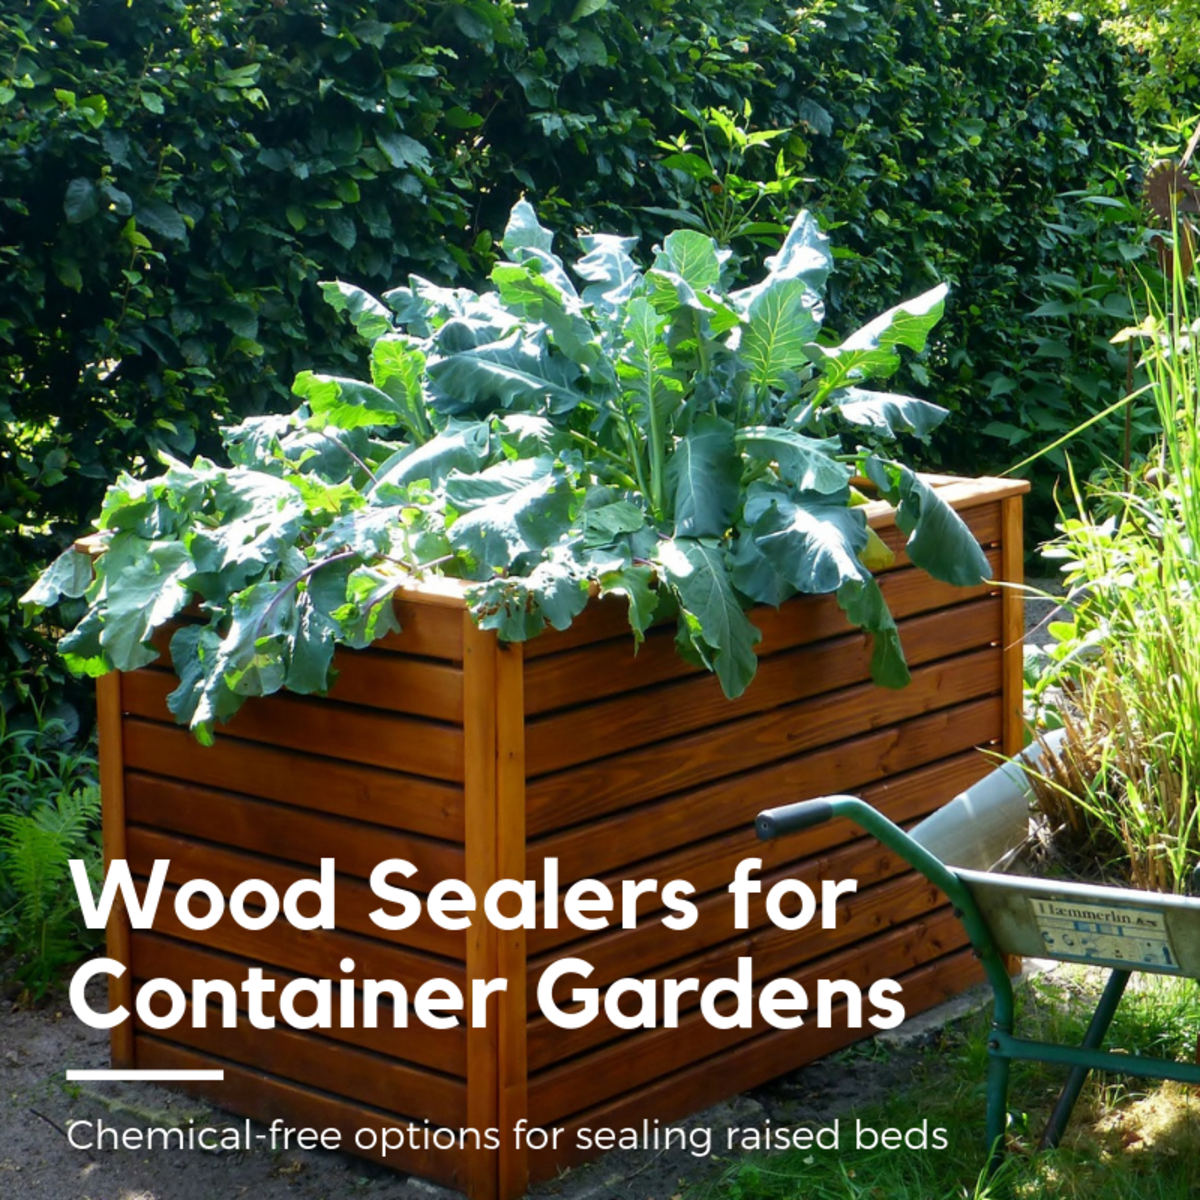 Safe, Chemical-Free Wood Sealers for Raised Beds and